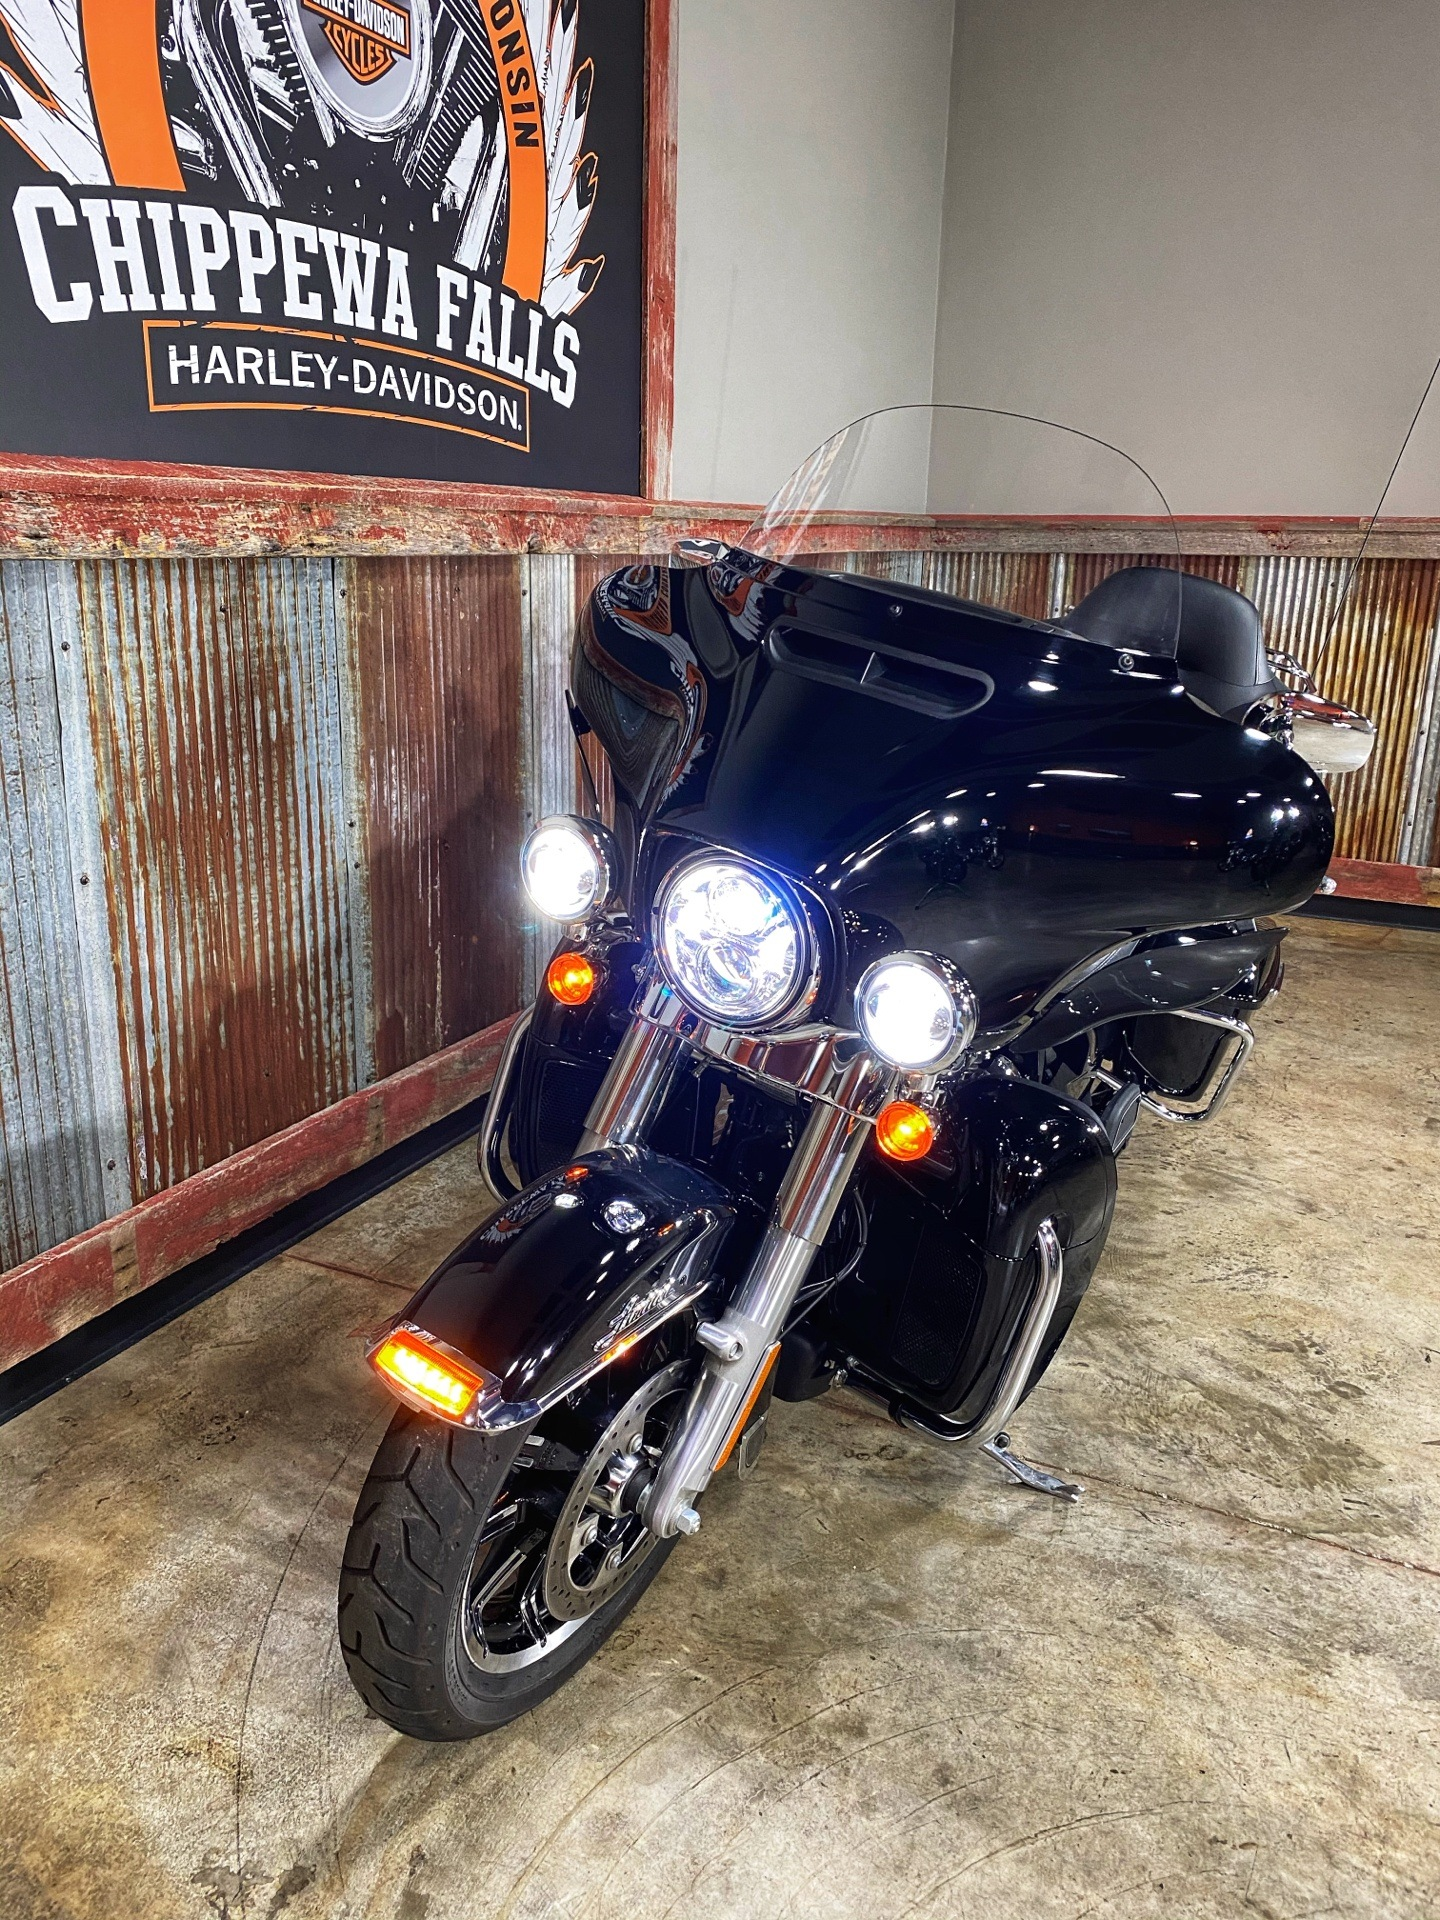 2019 Harley-Davidson Ultra Limited in Chippewa Falls, Wisconsin - Photo 21